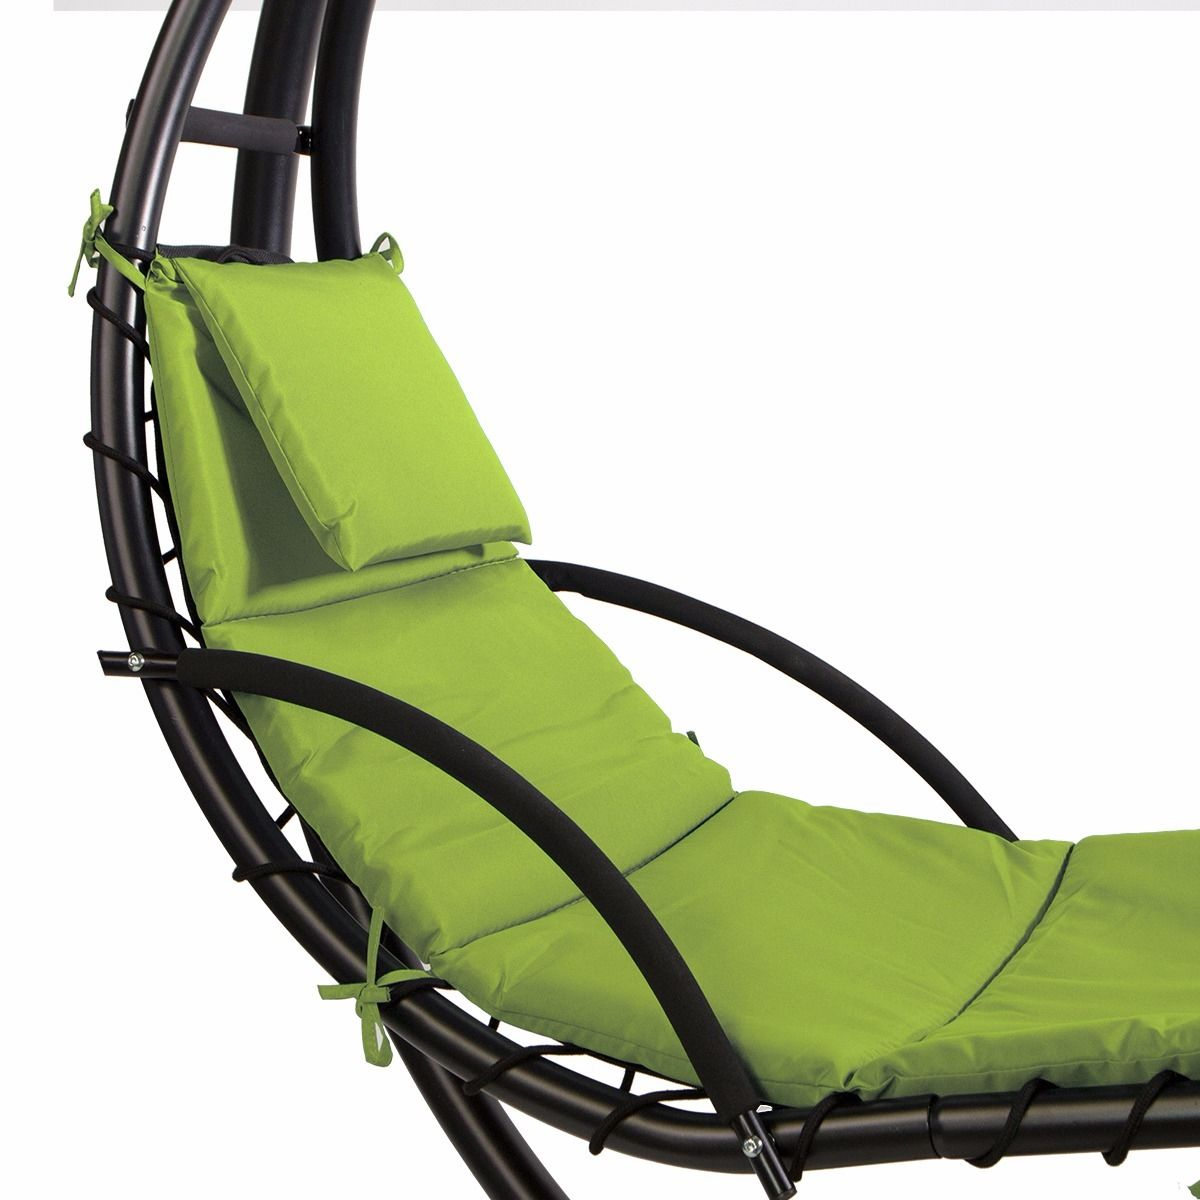 Barton Patio Hanging Helicopter dream Lounger Chair Stand ... on Hanging Helicopter Dream Lounger Chair id=74117